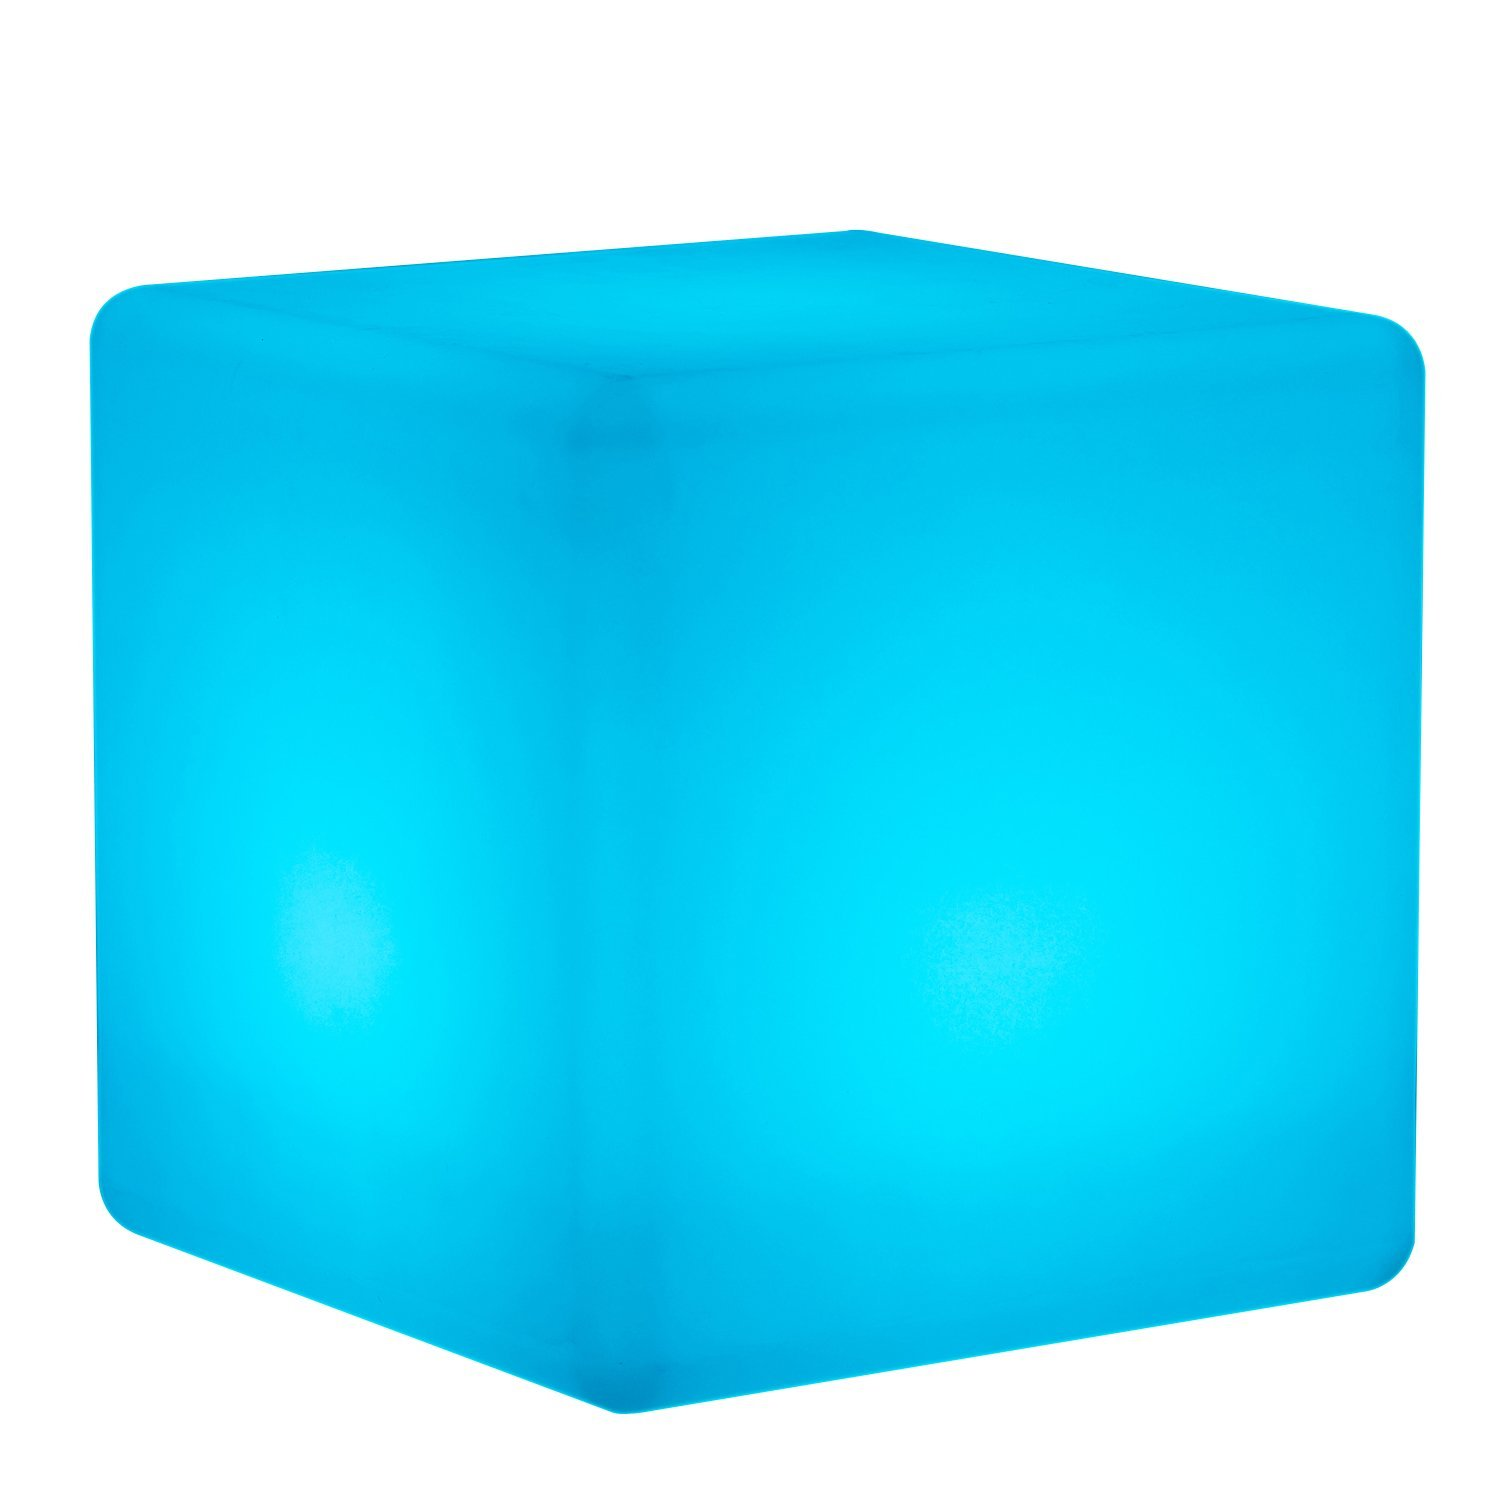 Mr.Go 14-inch 35cm Rechargeable LED Color Cube Light With Remote Control Magic RGB Color Changing Side Table Stool Home Bedroom Patio Pool Party Mood Lamp Night Light Romatic Decorative Lighting